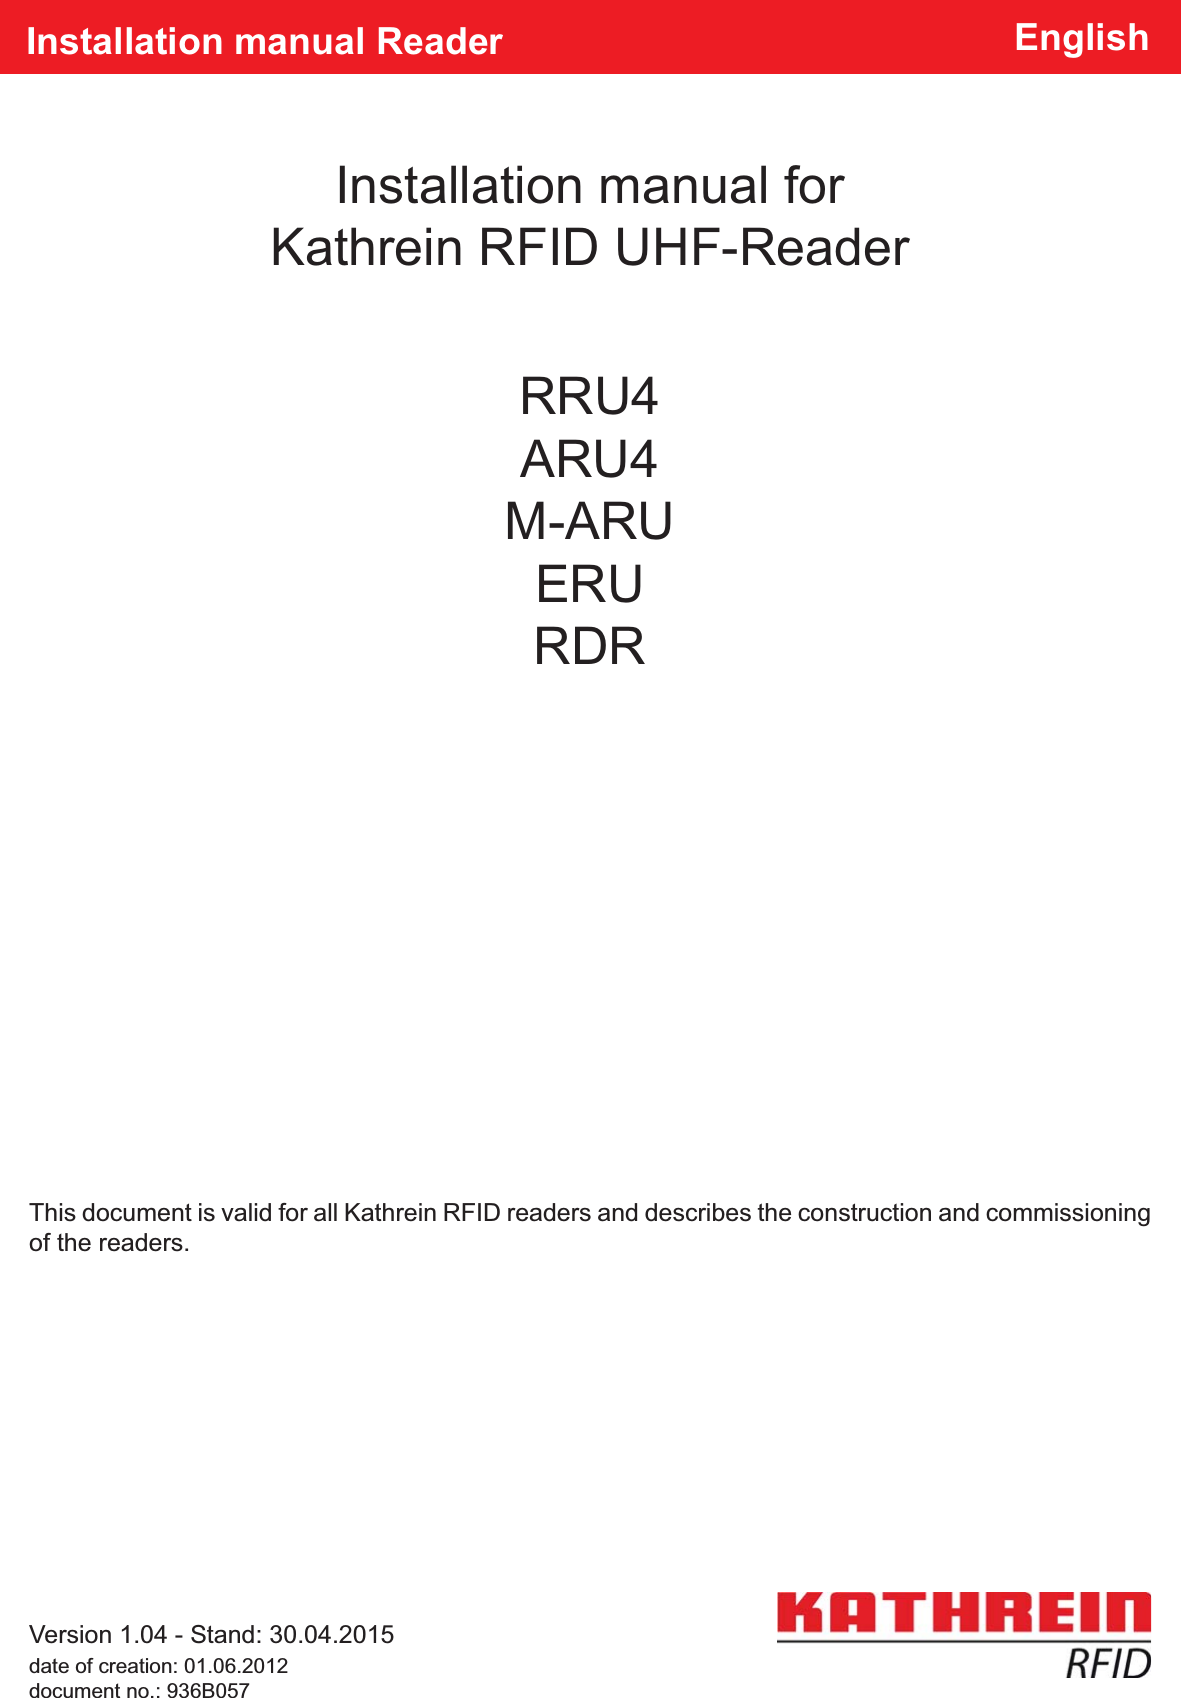 Installation manual for Kathrein RFID UHF-ReaderInstallation manual Reader EnglishThis document is valid for all Kathrein RFID readers and describes the construction and commissioning of the readers.Version 1.04 - Stand: 30.04.2015date of creation: 01.06.2012document no.: 936B057RRU4ARU4M-ARUERURDR